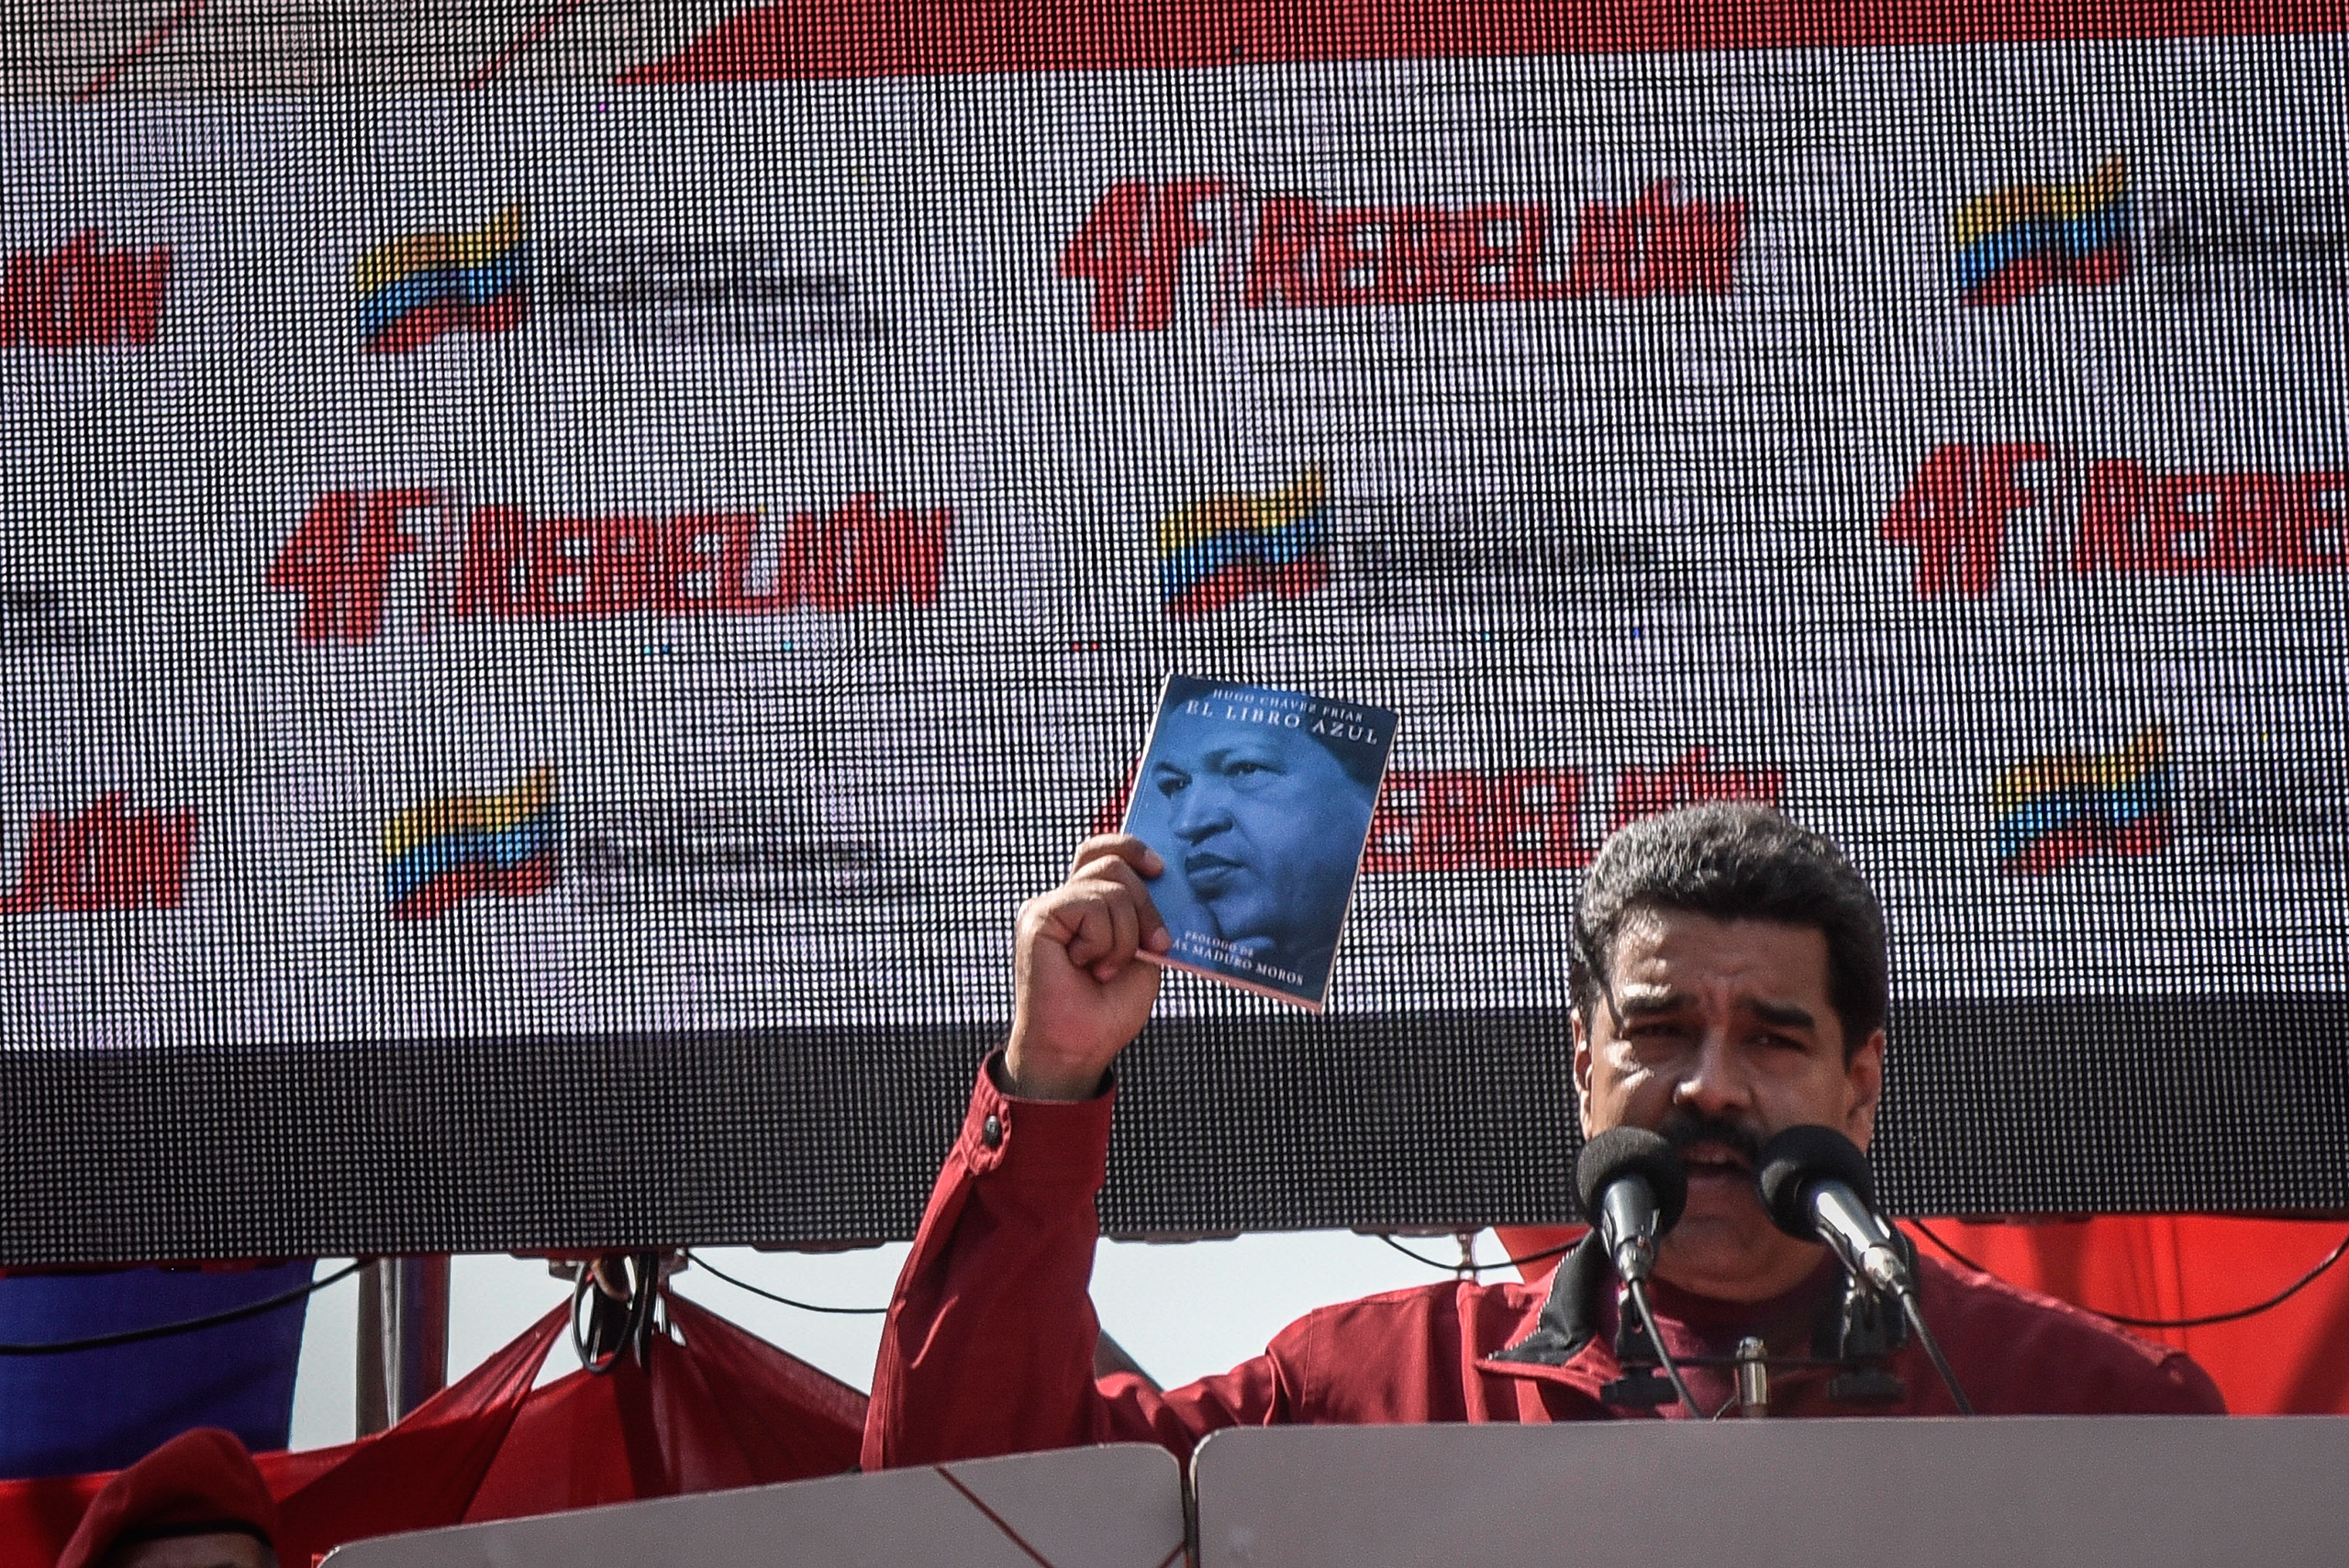 Venezuelan President Nicolás Maduro holds a copy of the El Libro Azul, or The Blue Book, written by his predecessor, Hugo Chávez, while speaking at a rally to commemorate the 24th anniversary of Chávez's failed military coup in Caracas, Venezuela, Feb. 4, 2016.